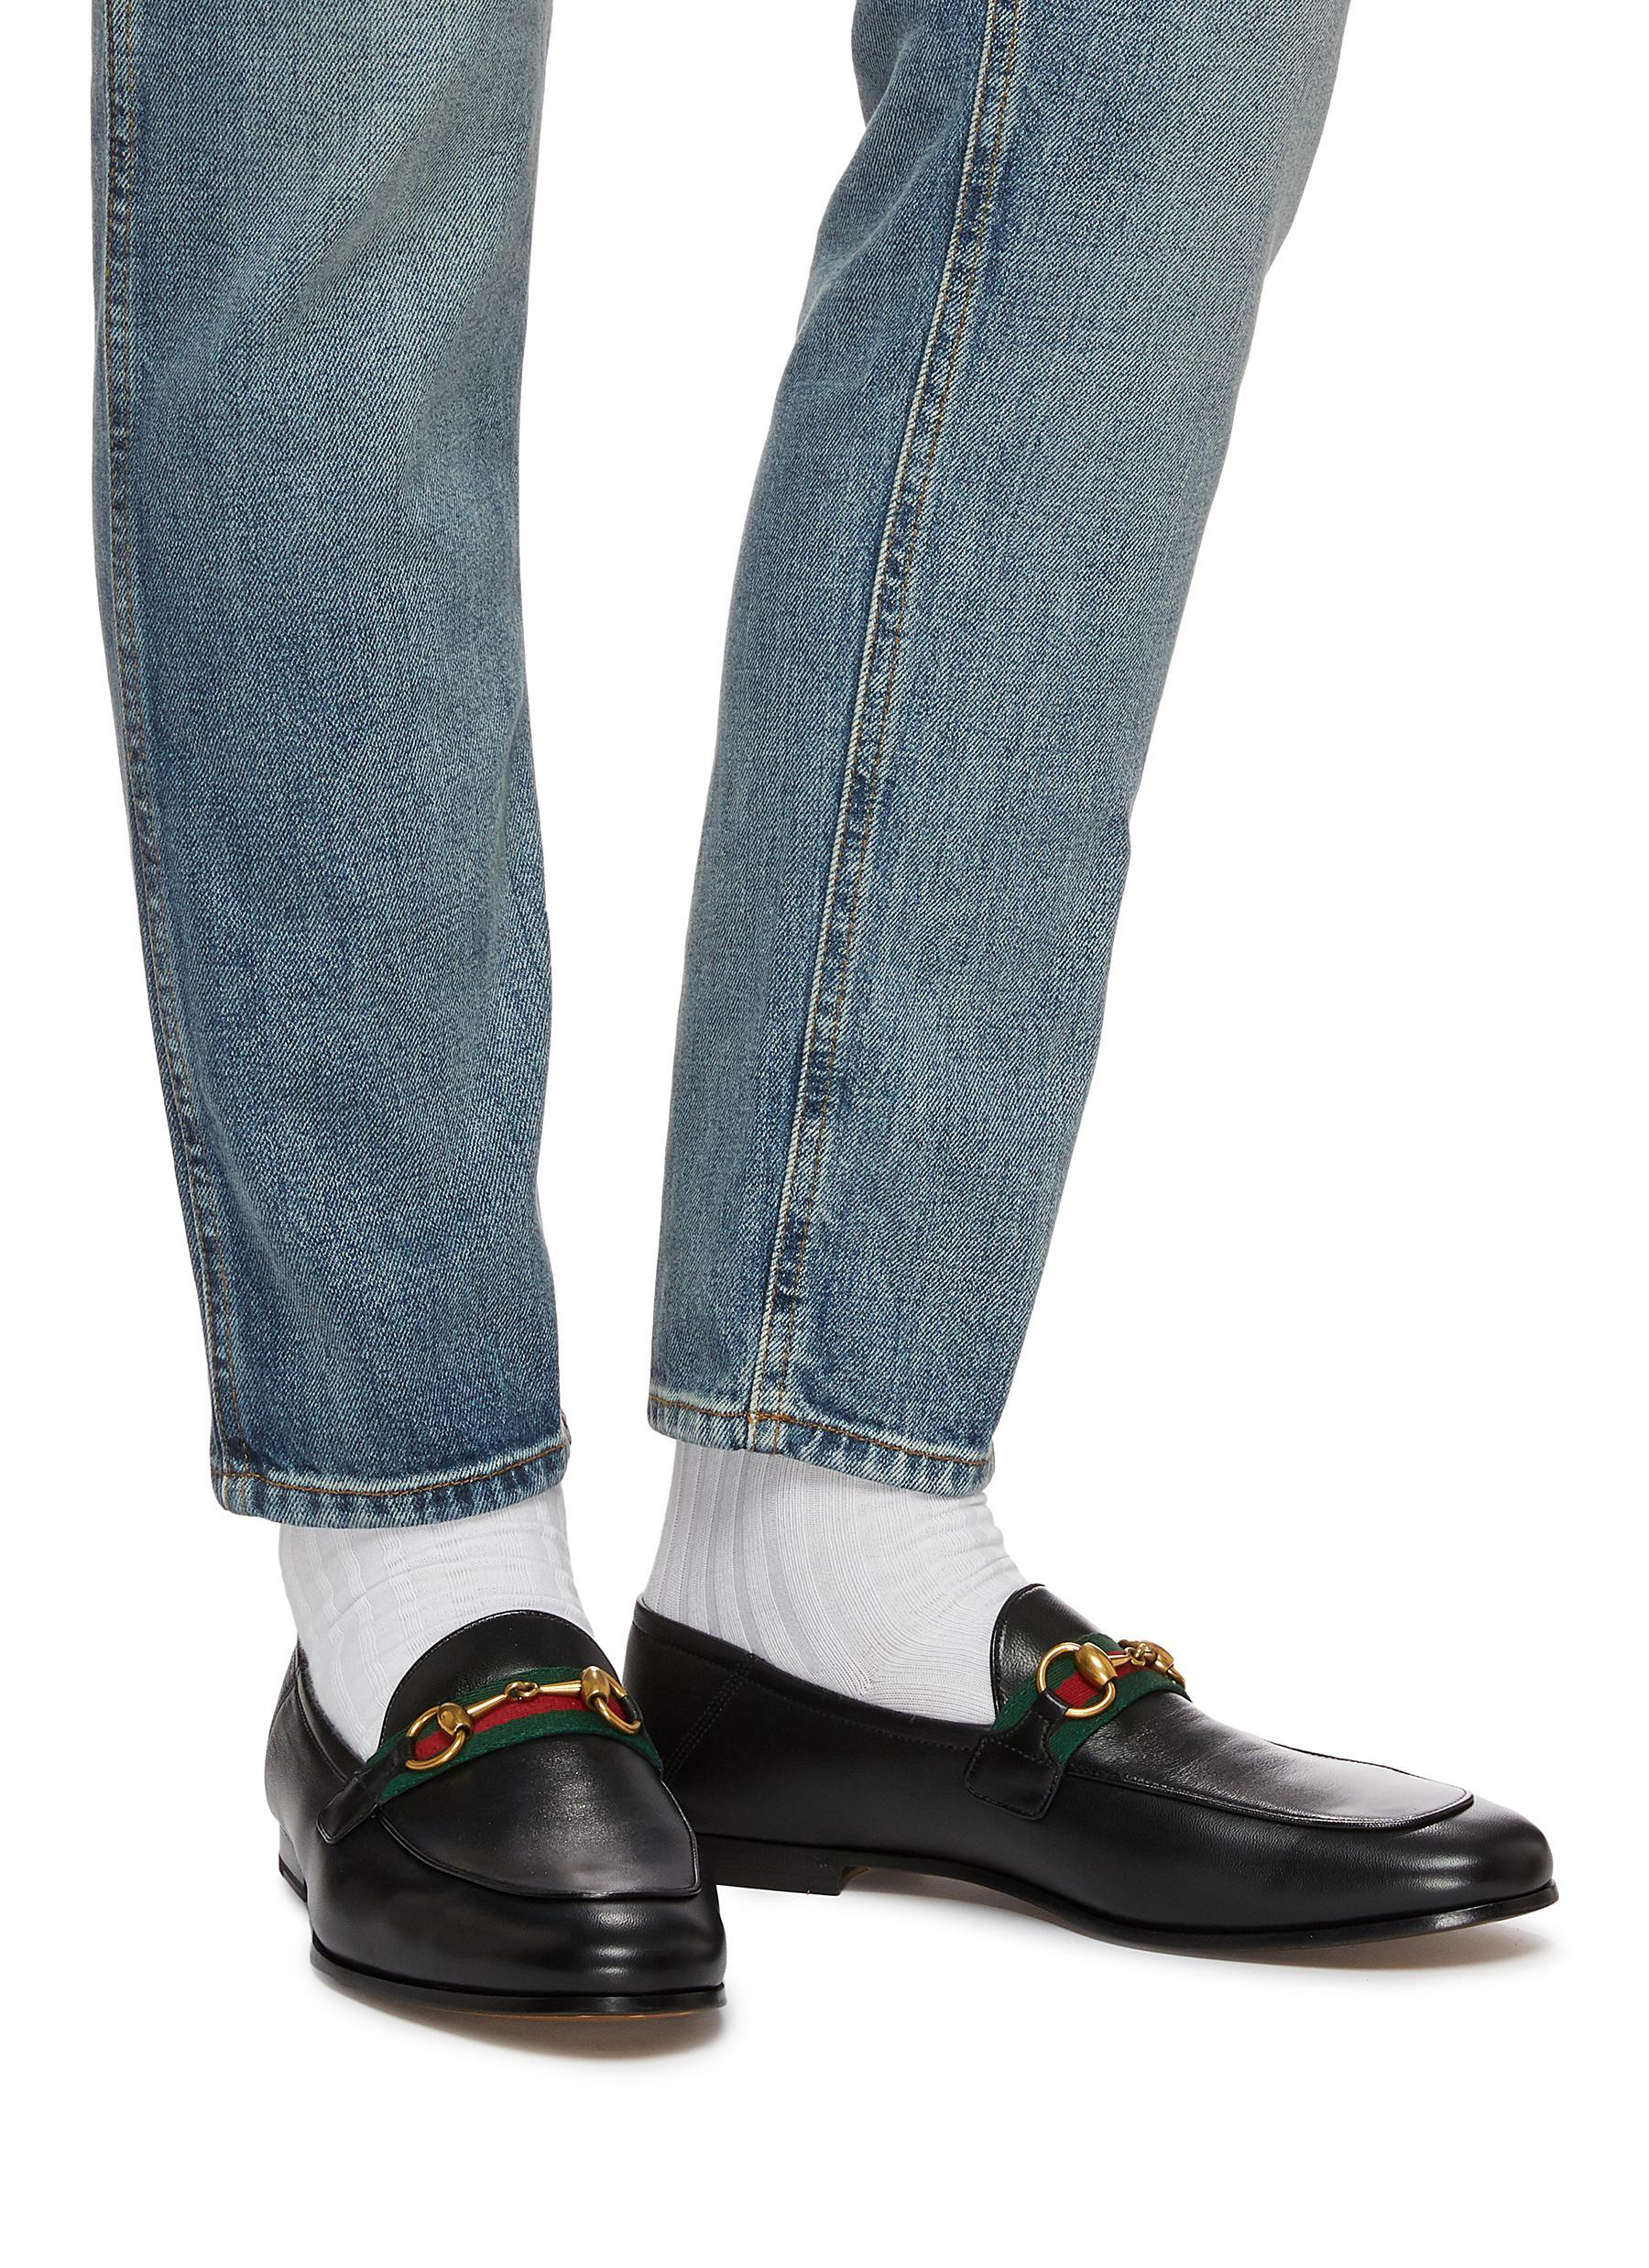 Gucci Leather GG Web Loafers in Black